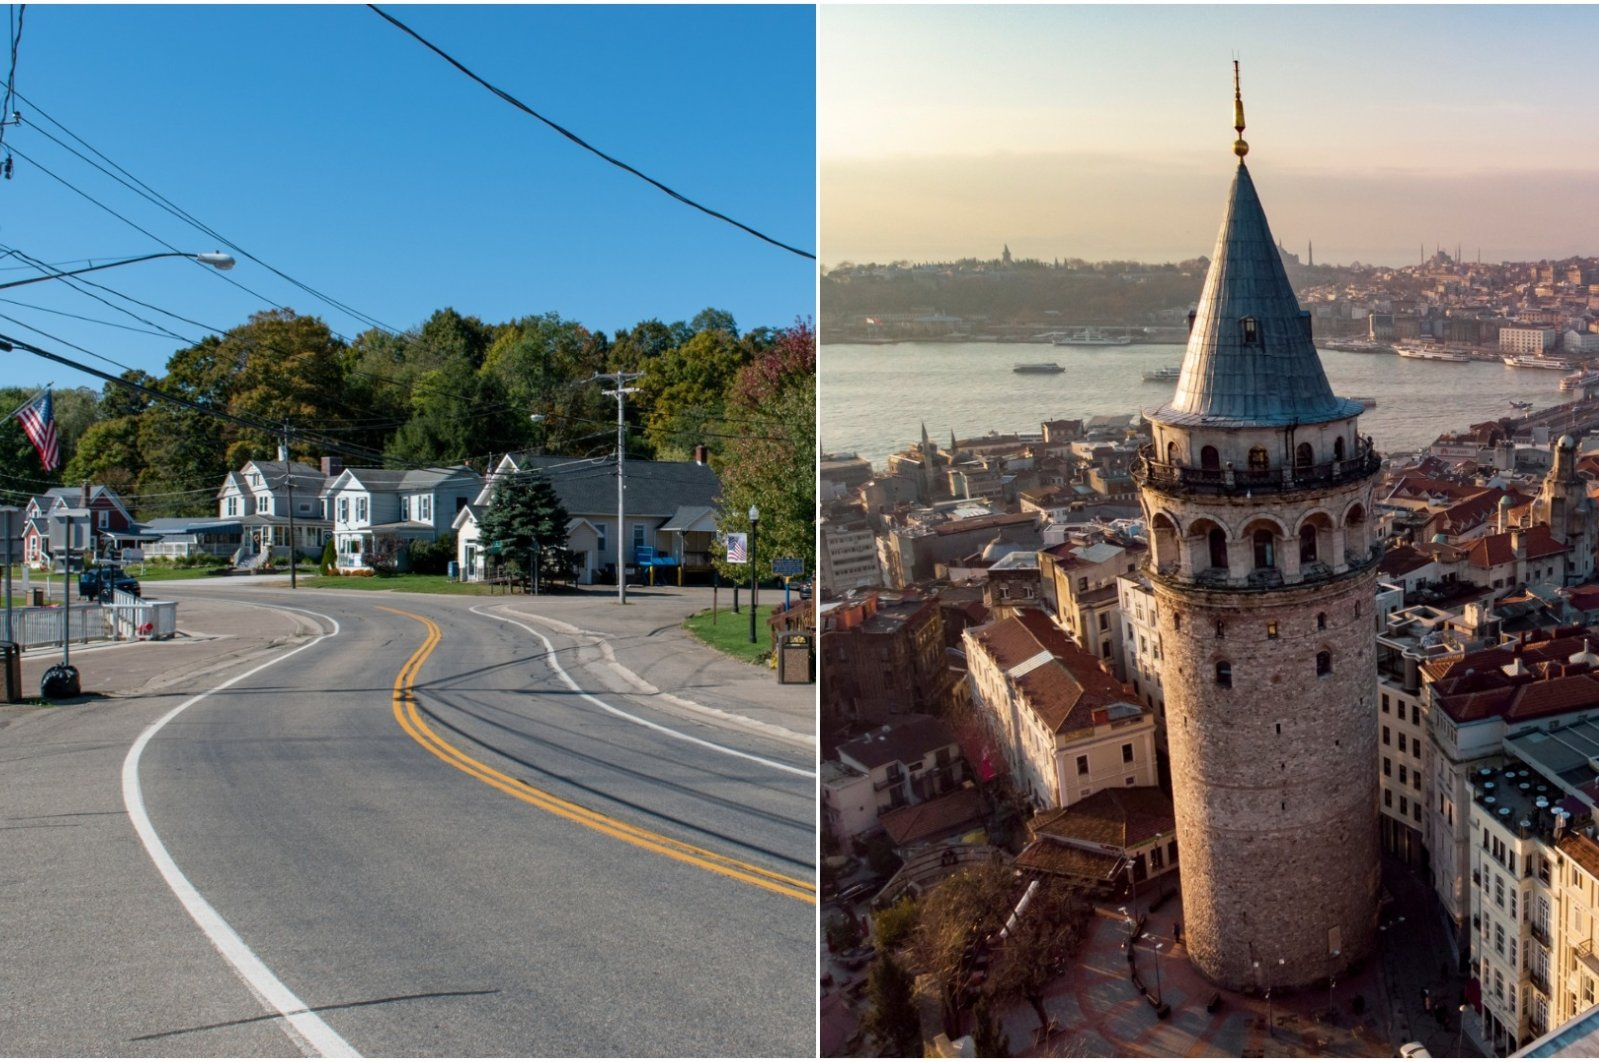 Moving from a small town in the county of Chautauqua in New York to Istanbul, the largest city in Europe, is a drastic and life-altering change. (iStock Photo)